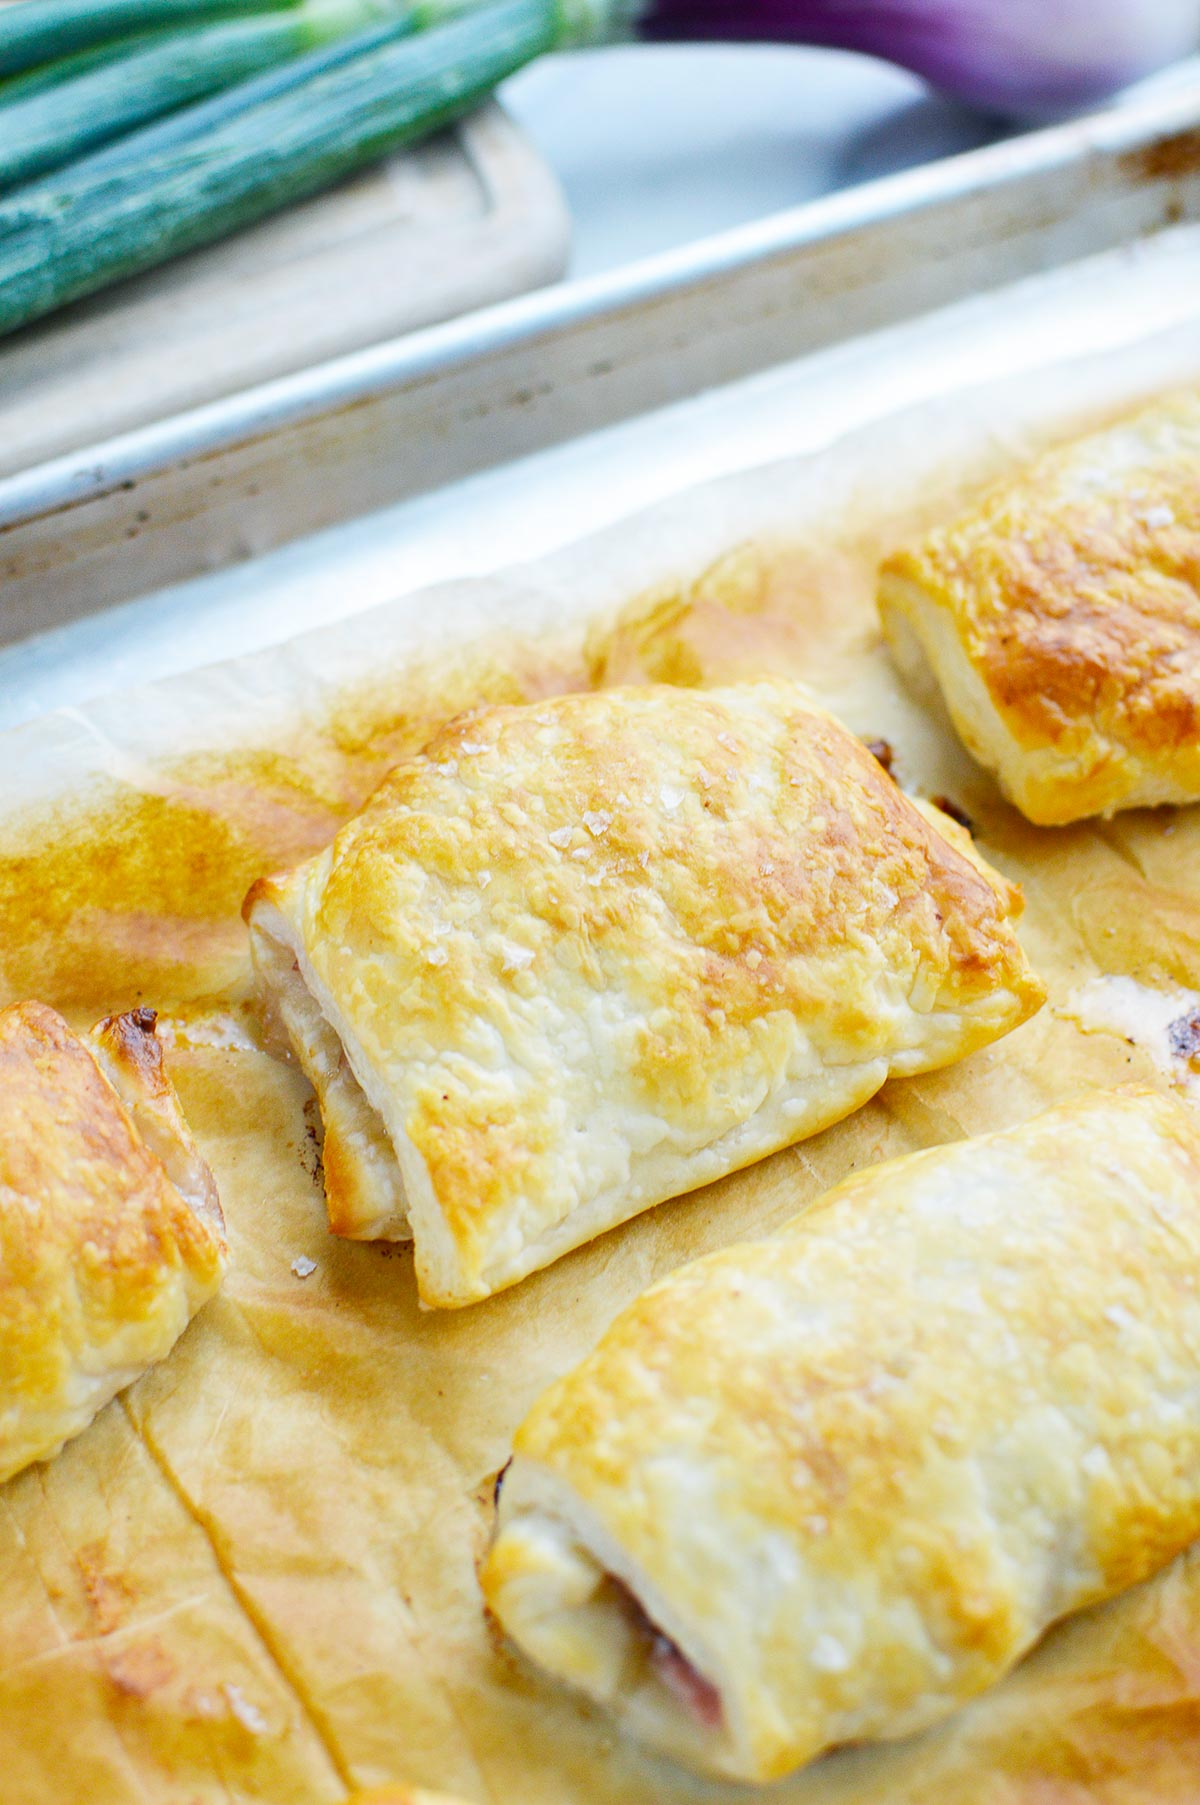 baked puff pastry on baking sheet